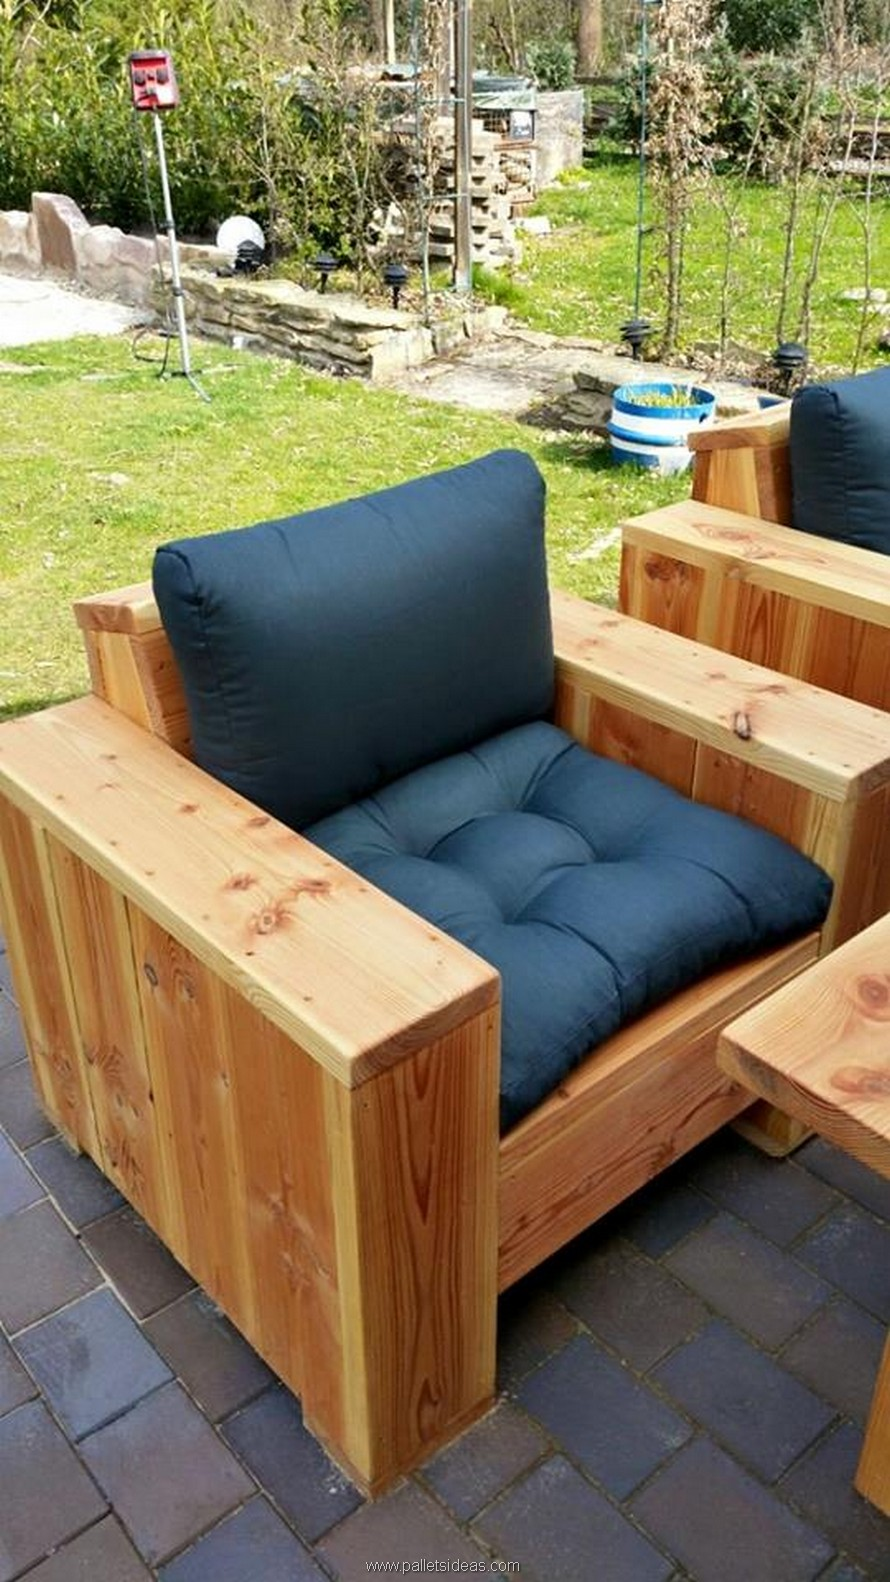 Pallet Wood Outdoor Lounge Furniture | Pallet Ideas: Recycled ...